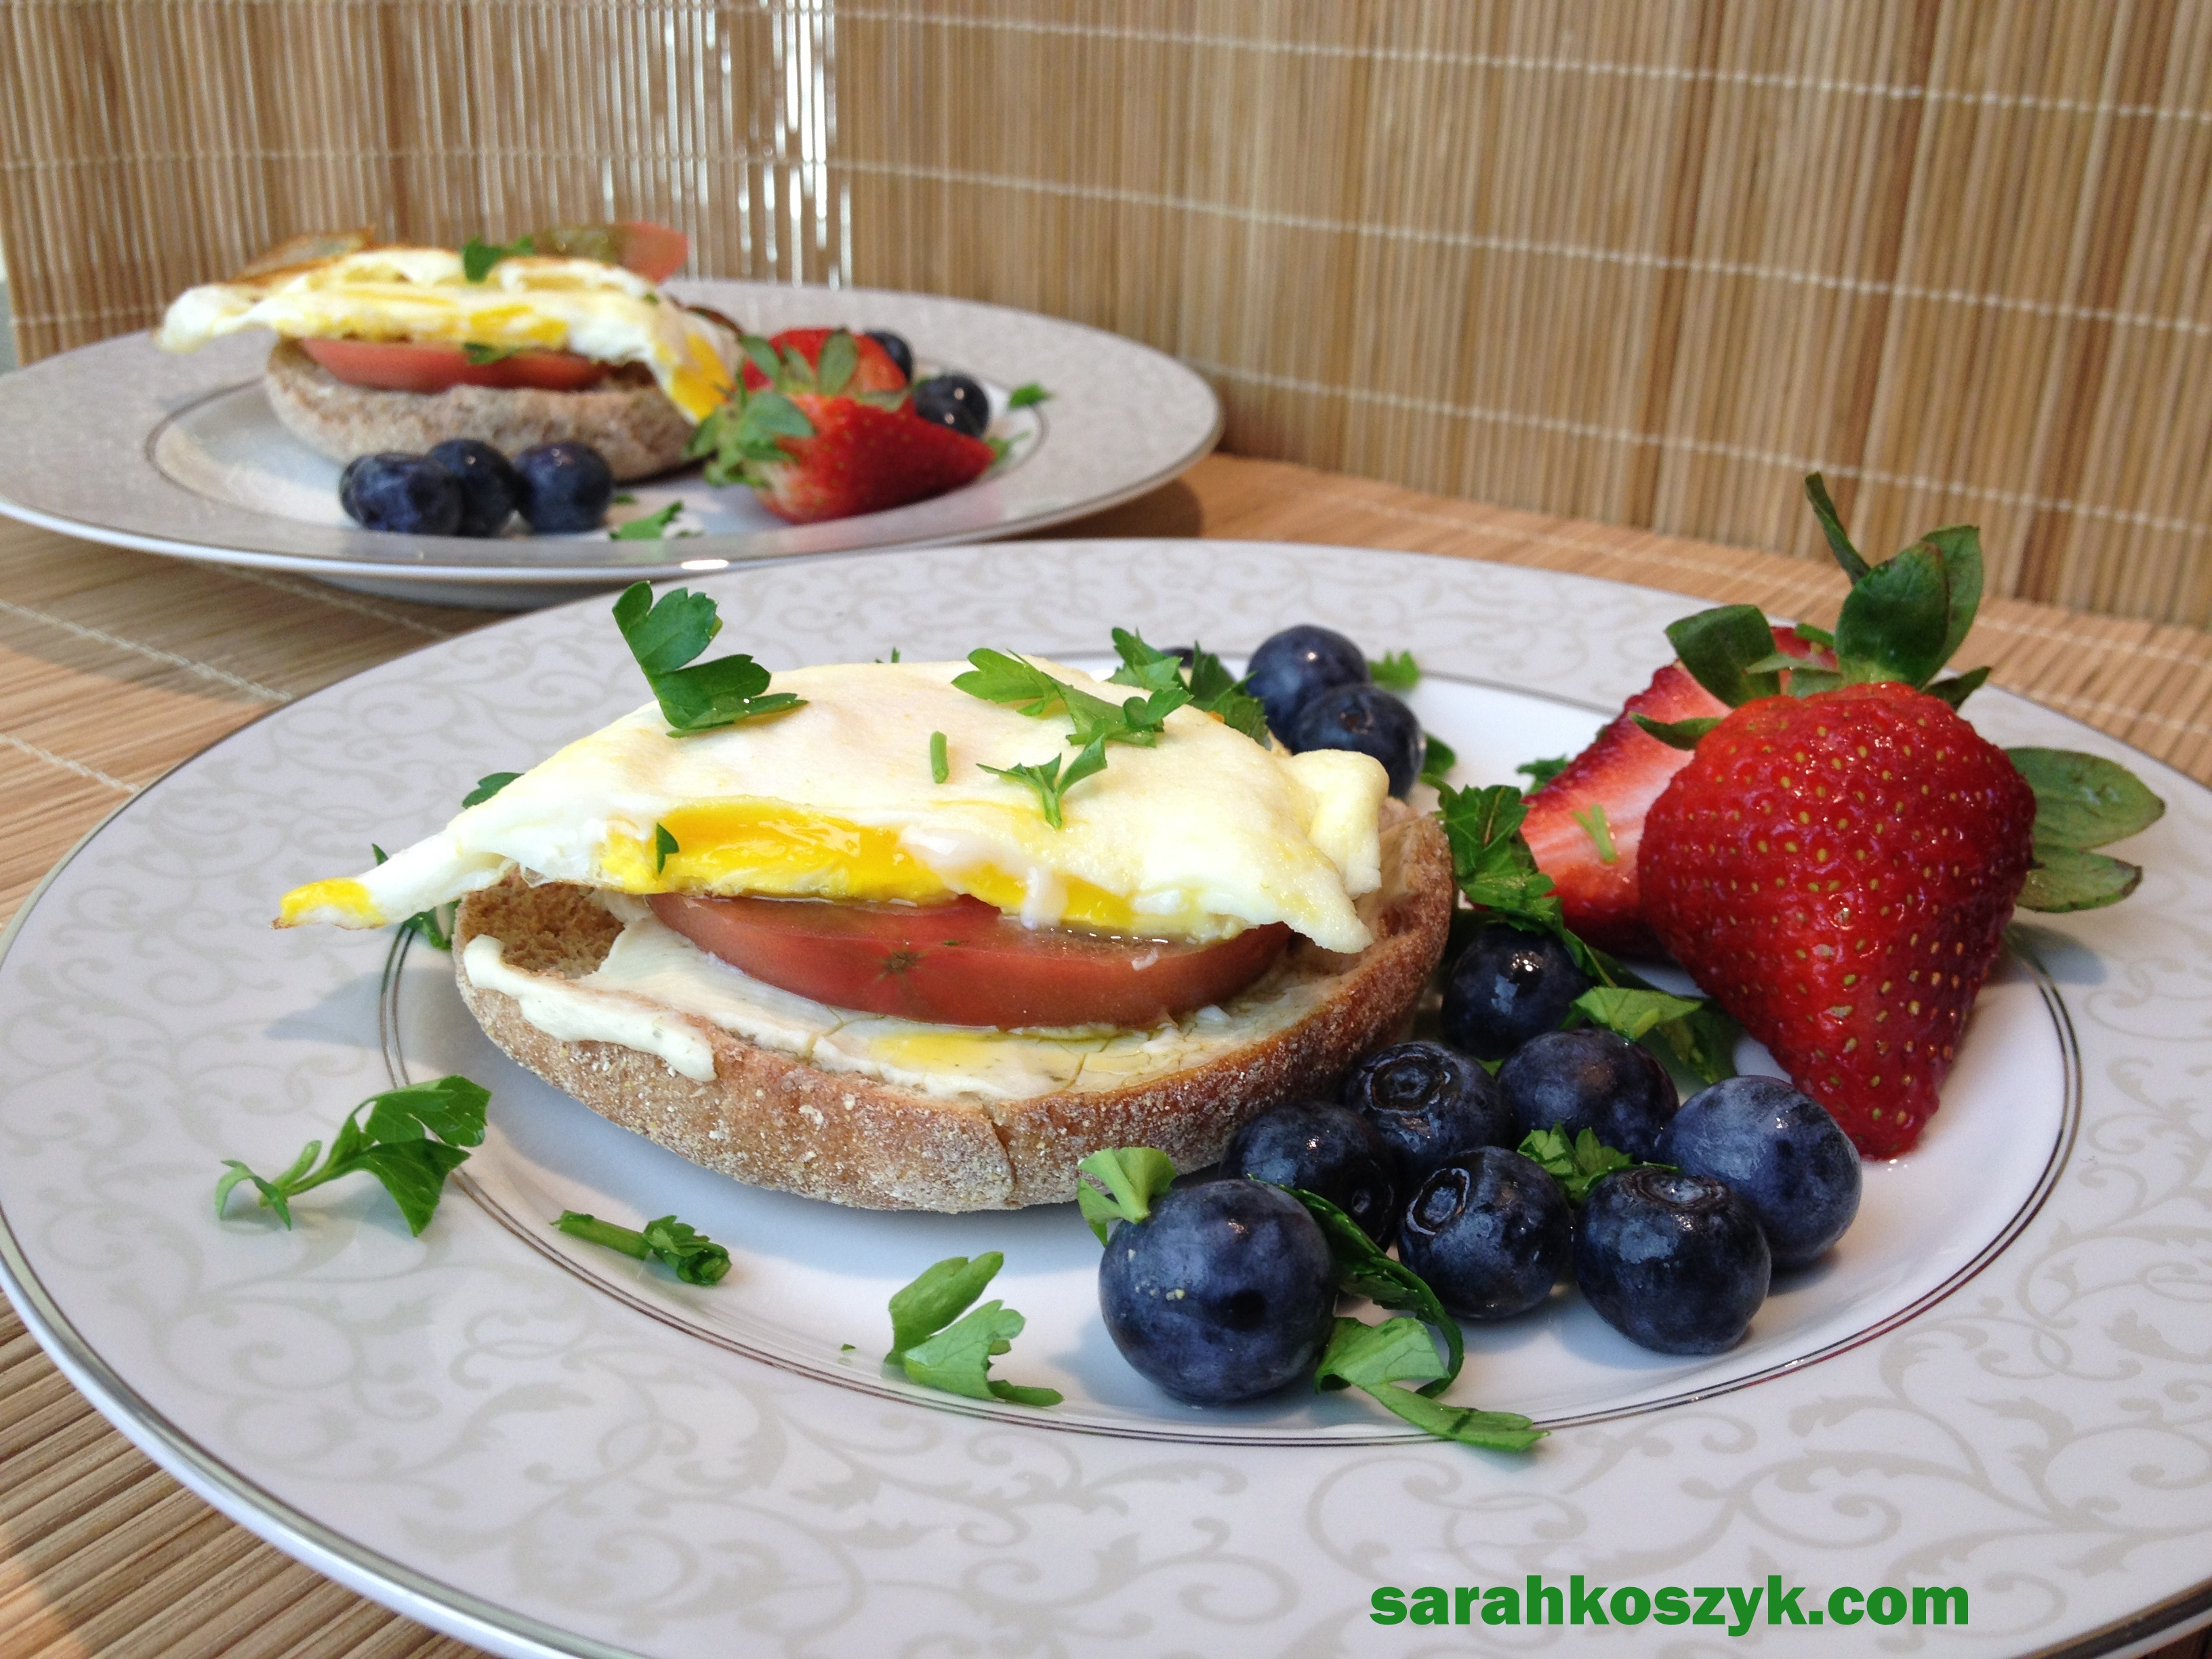 Egg-licious: Egg Ideas for Breakfast In 5-Minutes Or Less